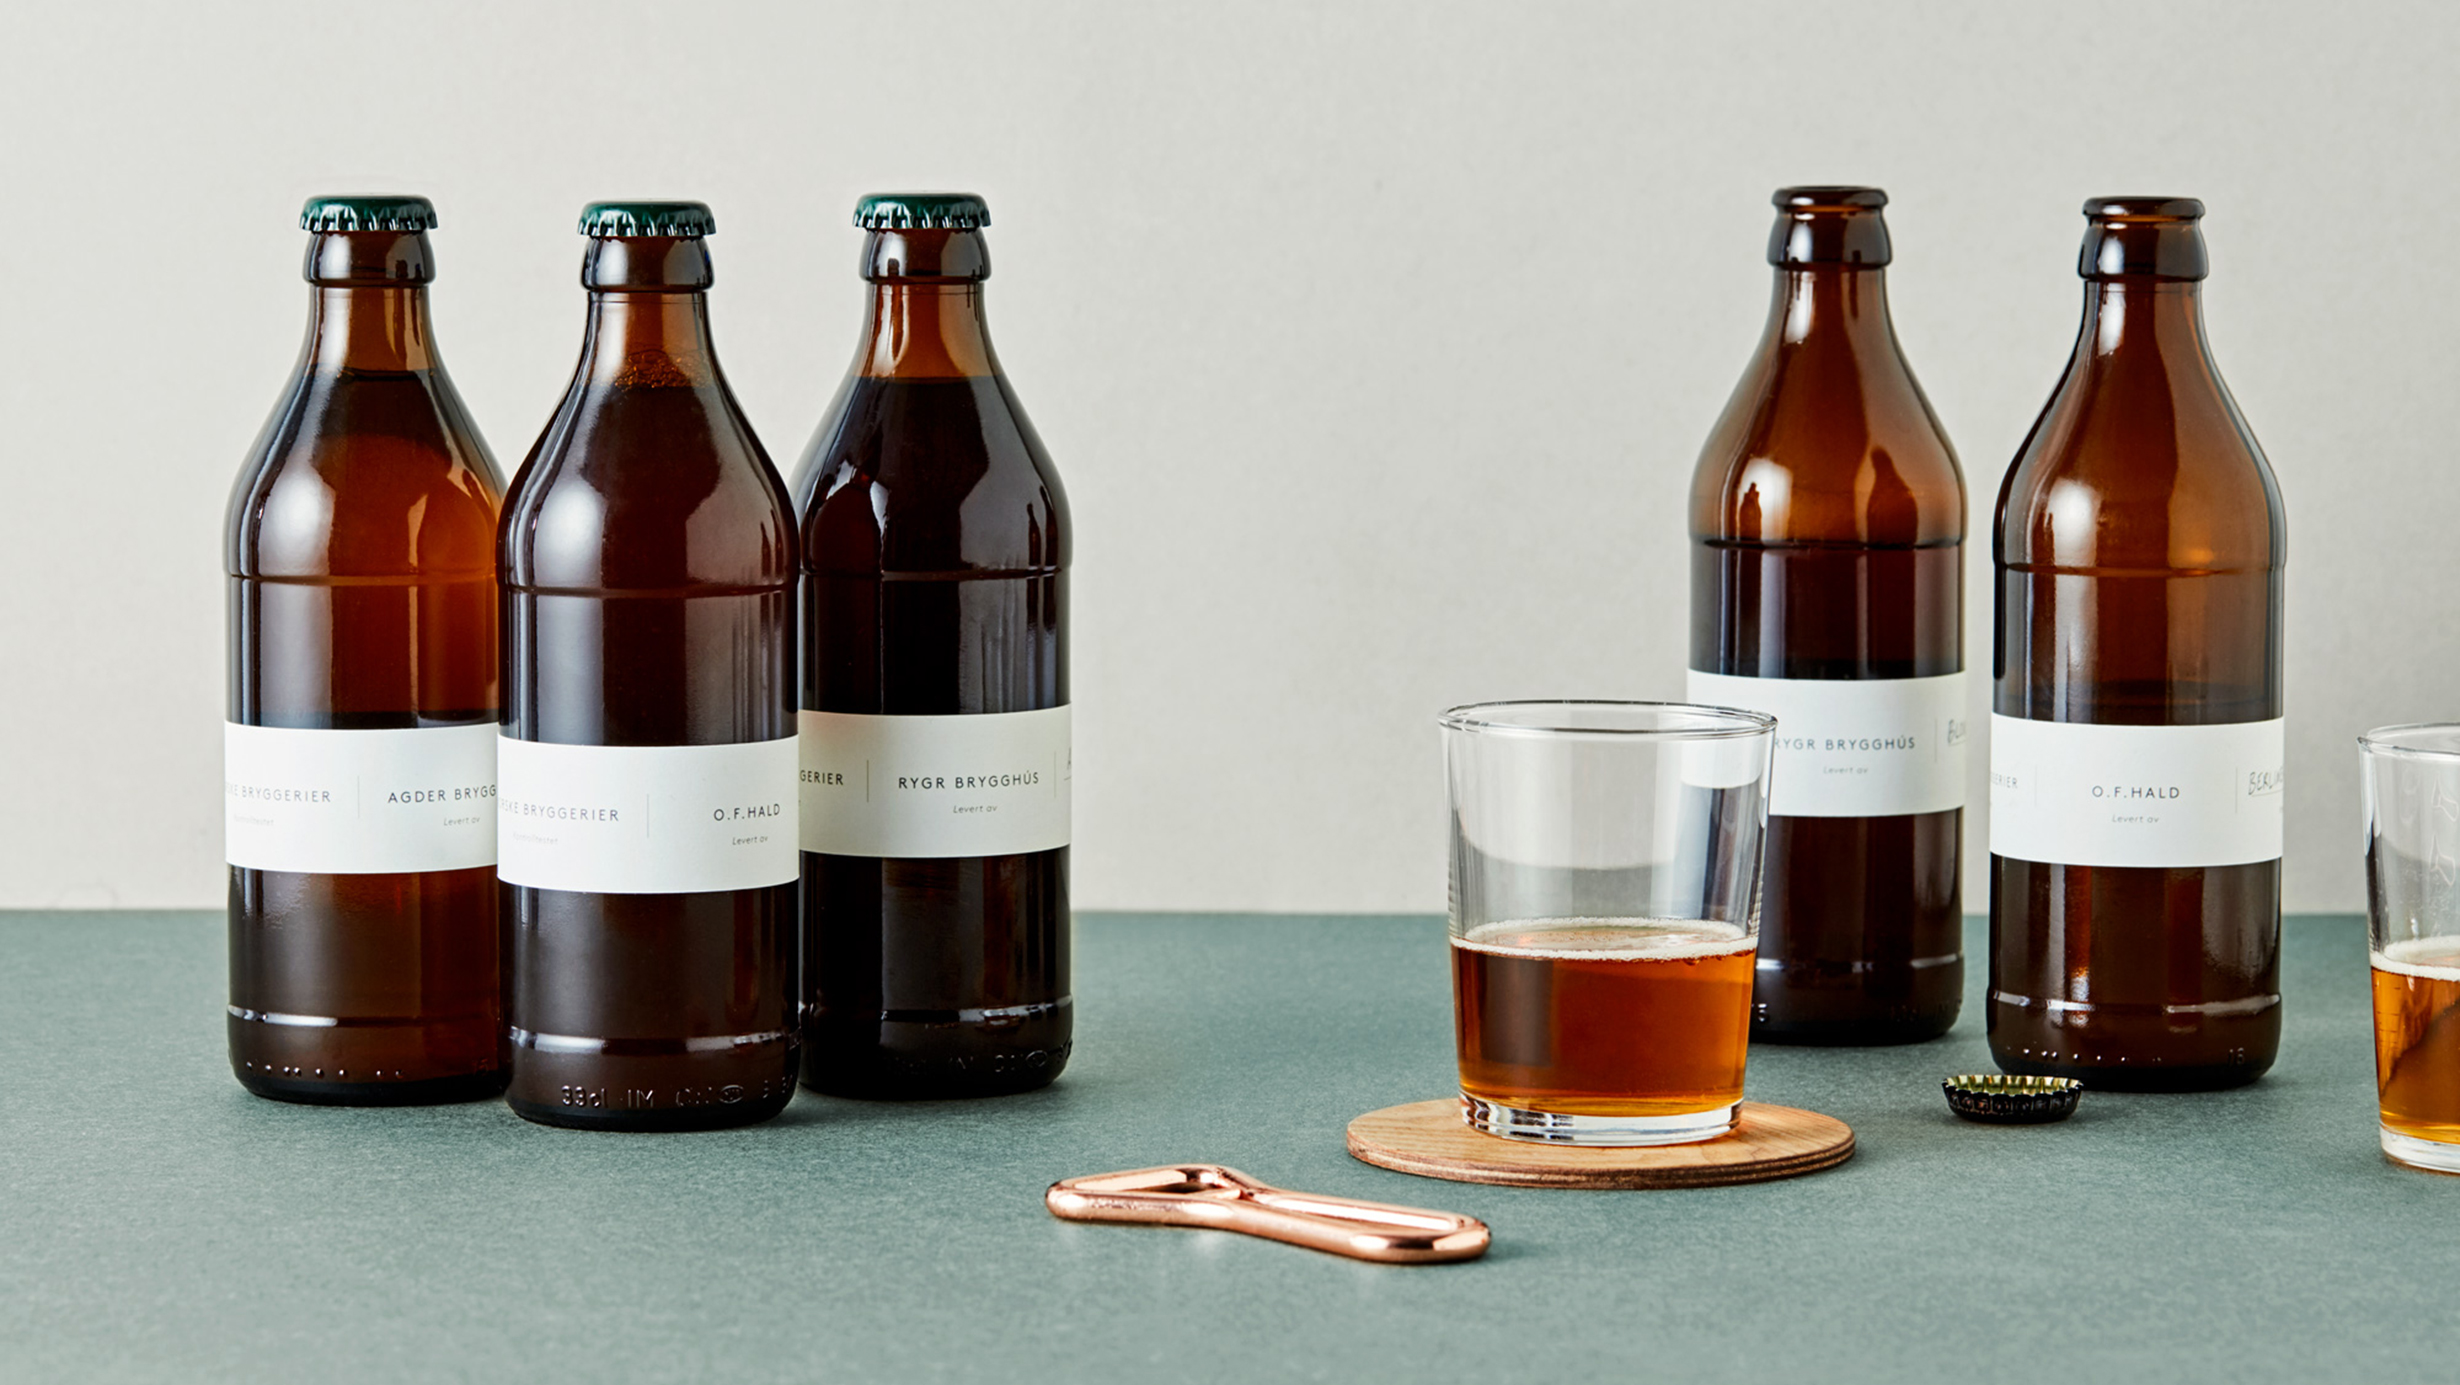 Norske_Bryggerier_preview